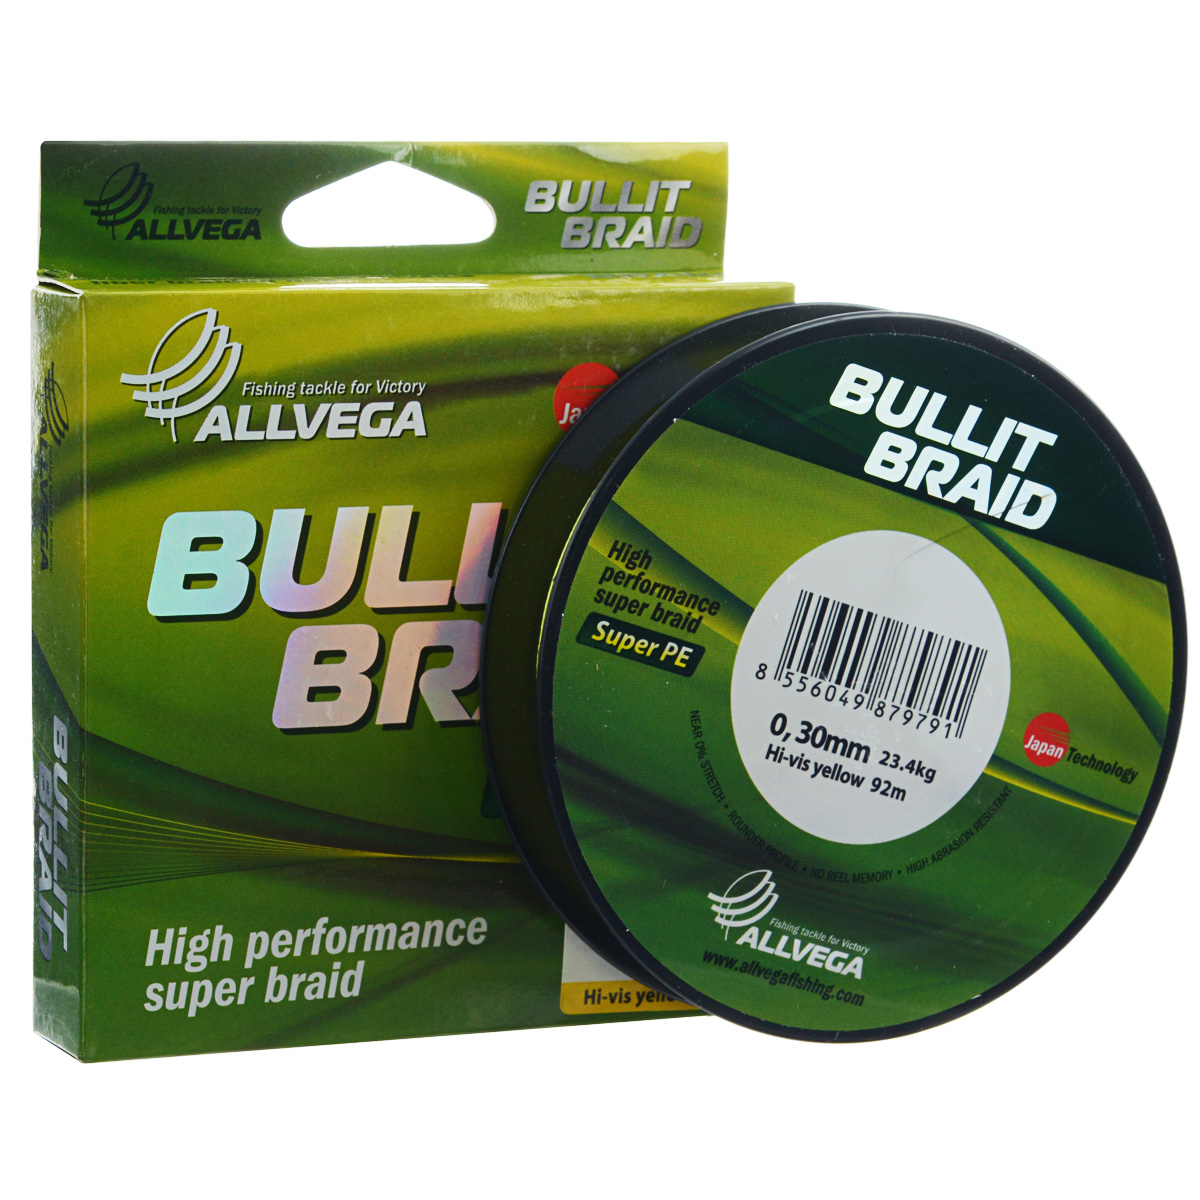 Леска плетеная Allvega Bullit Braid, цвет: ярко-желтый, 92 м, 0,3 мм, 23,4 кг